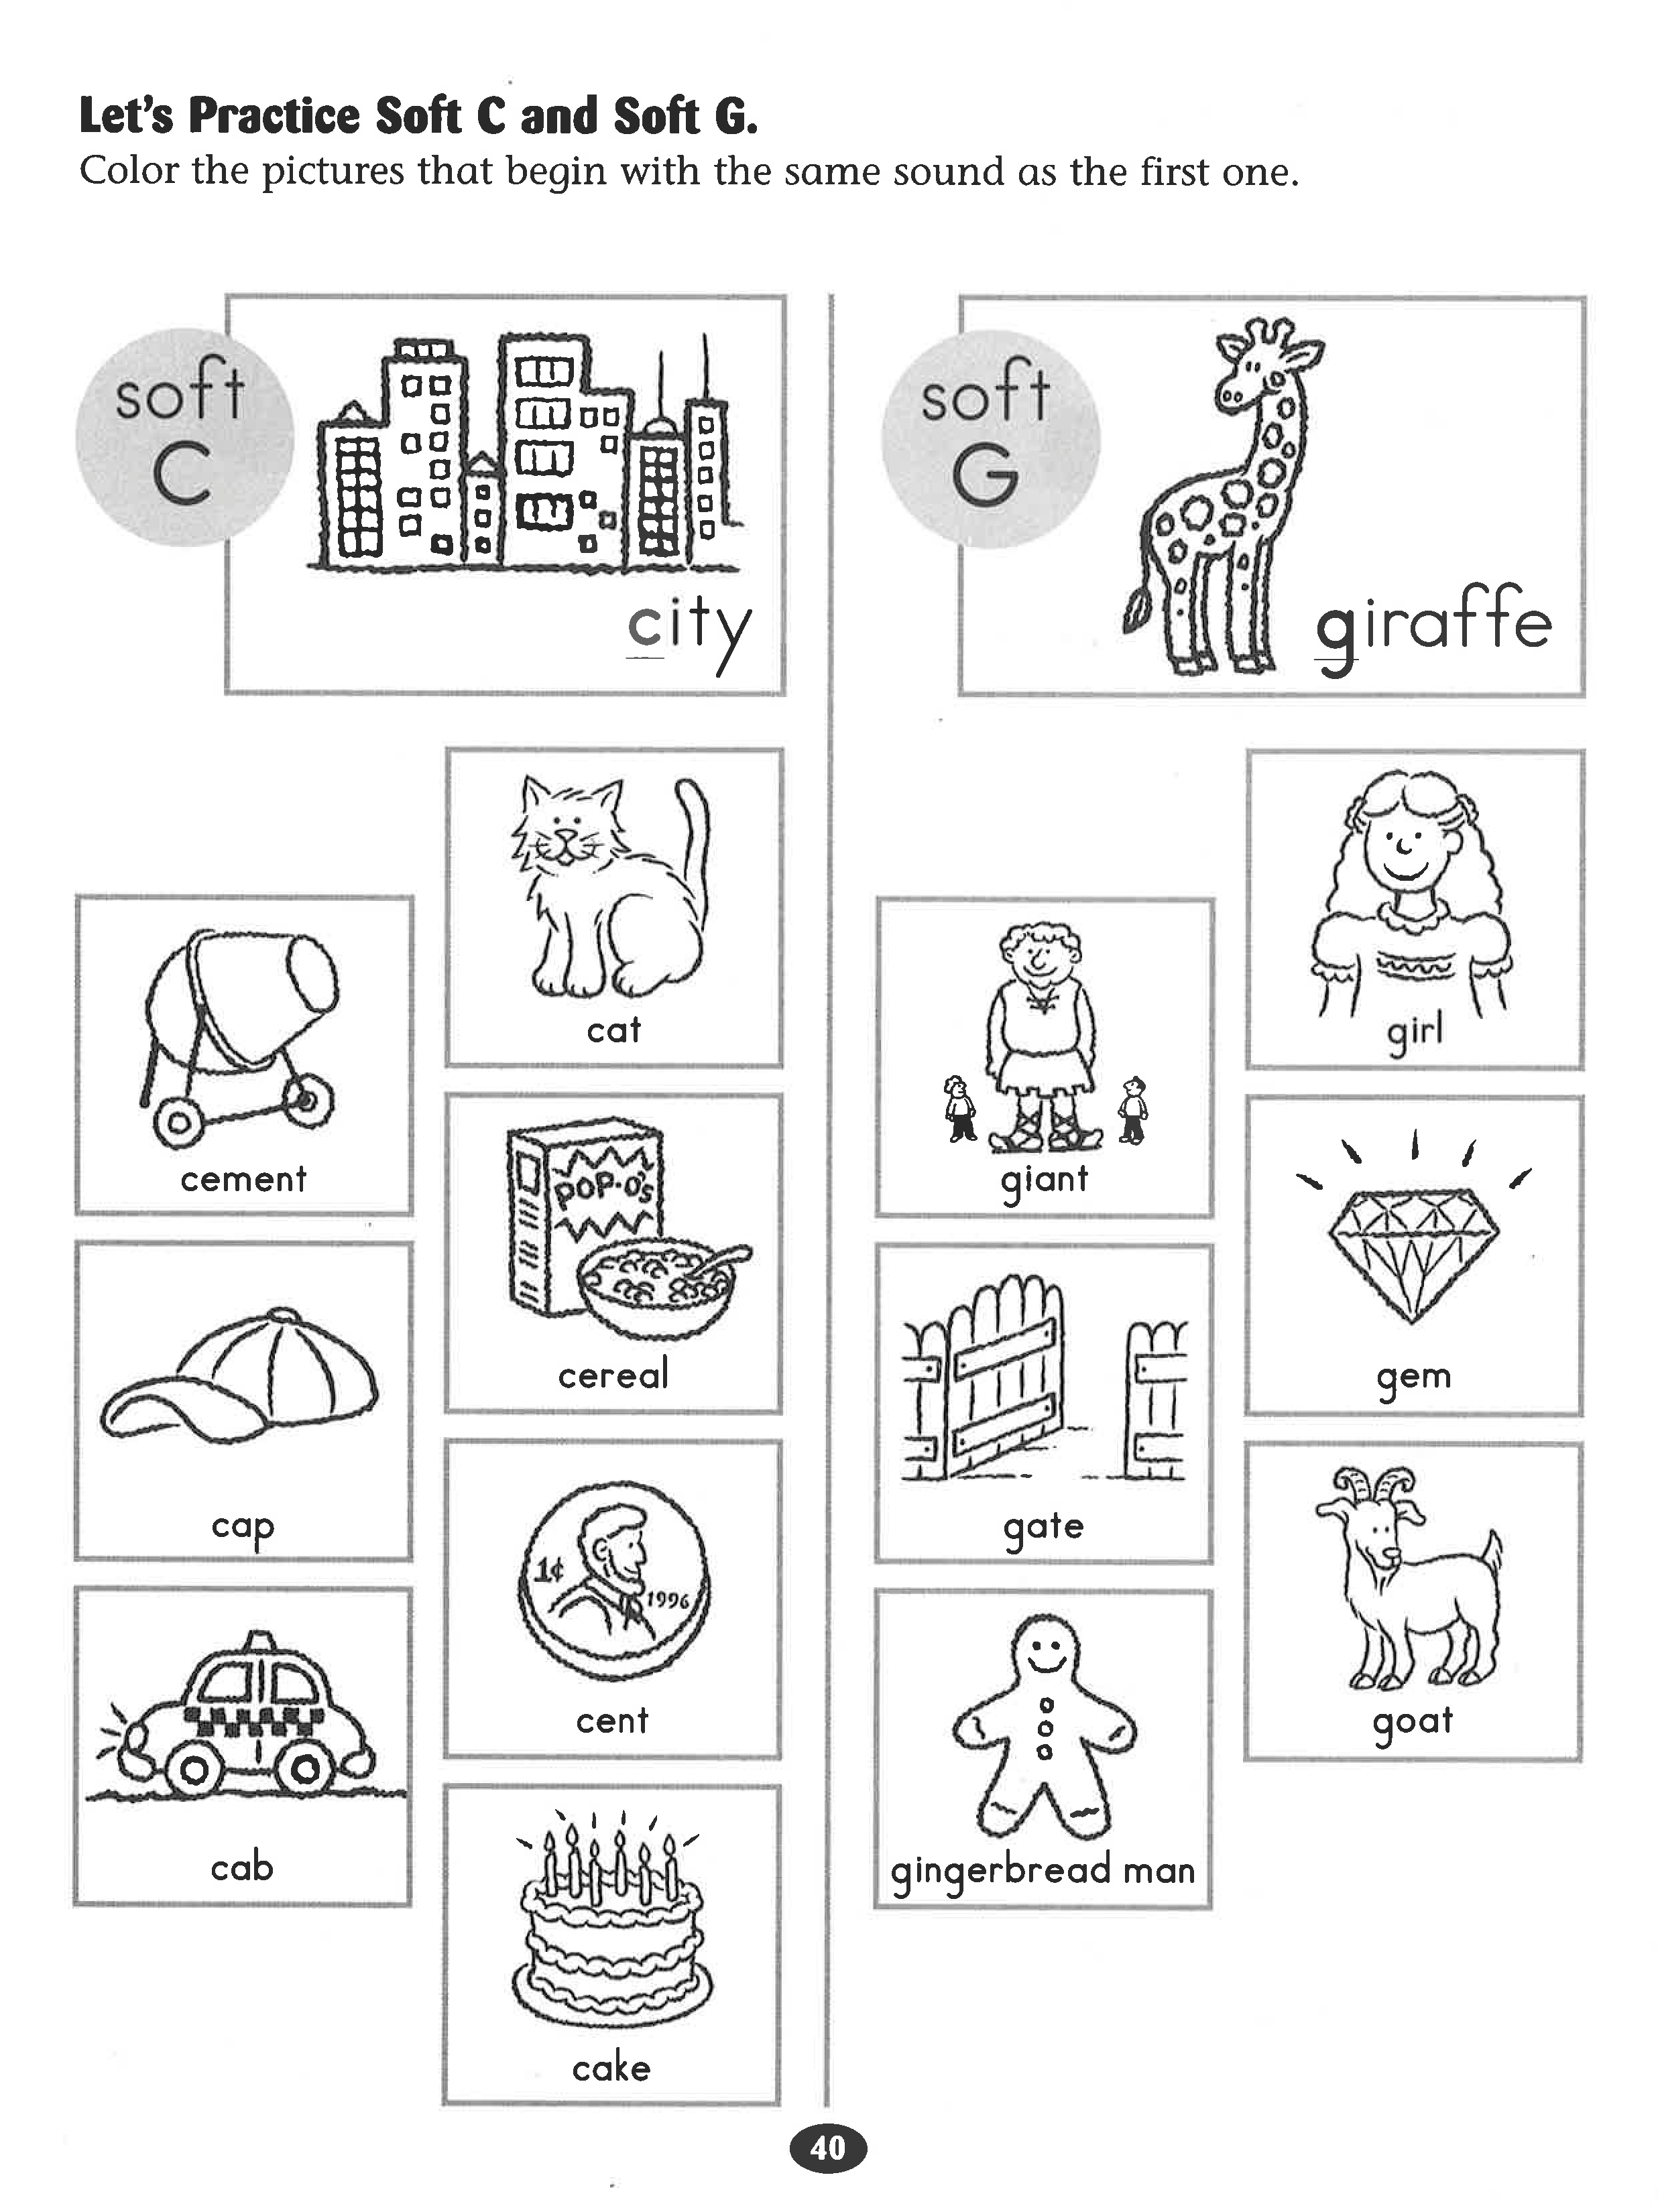 Uncategorized Sh Worksheets short vowels hard and soft c practice worksheet lesson planet lets g worksheet